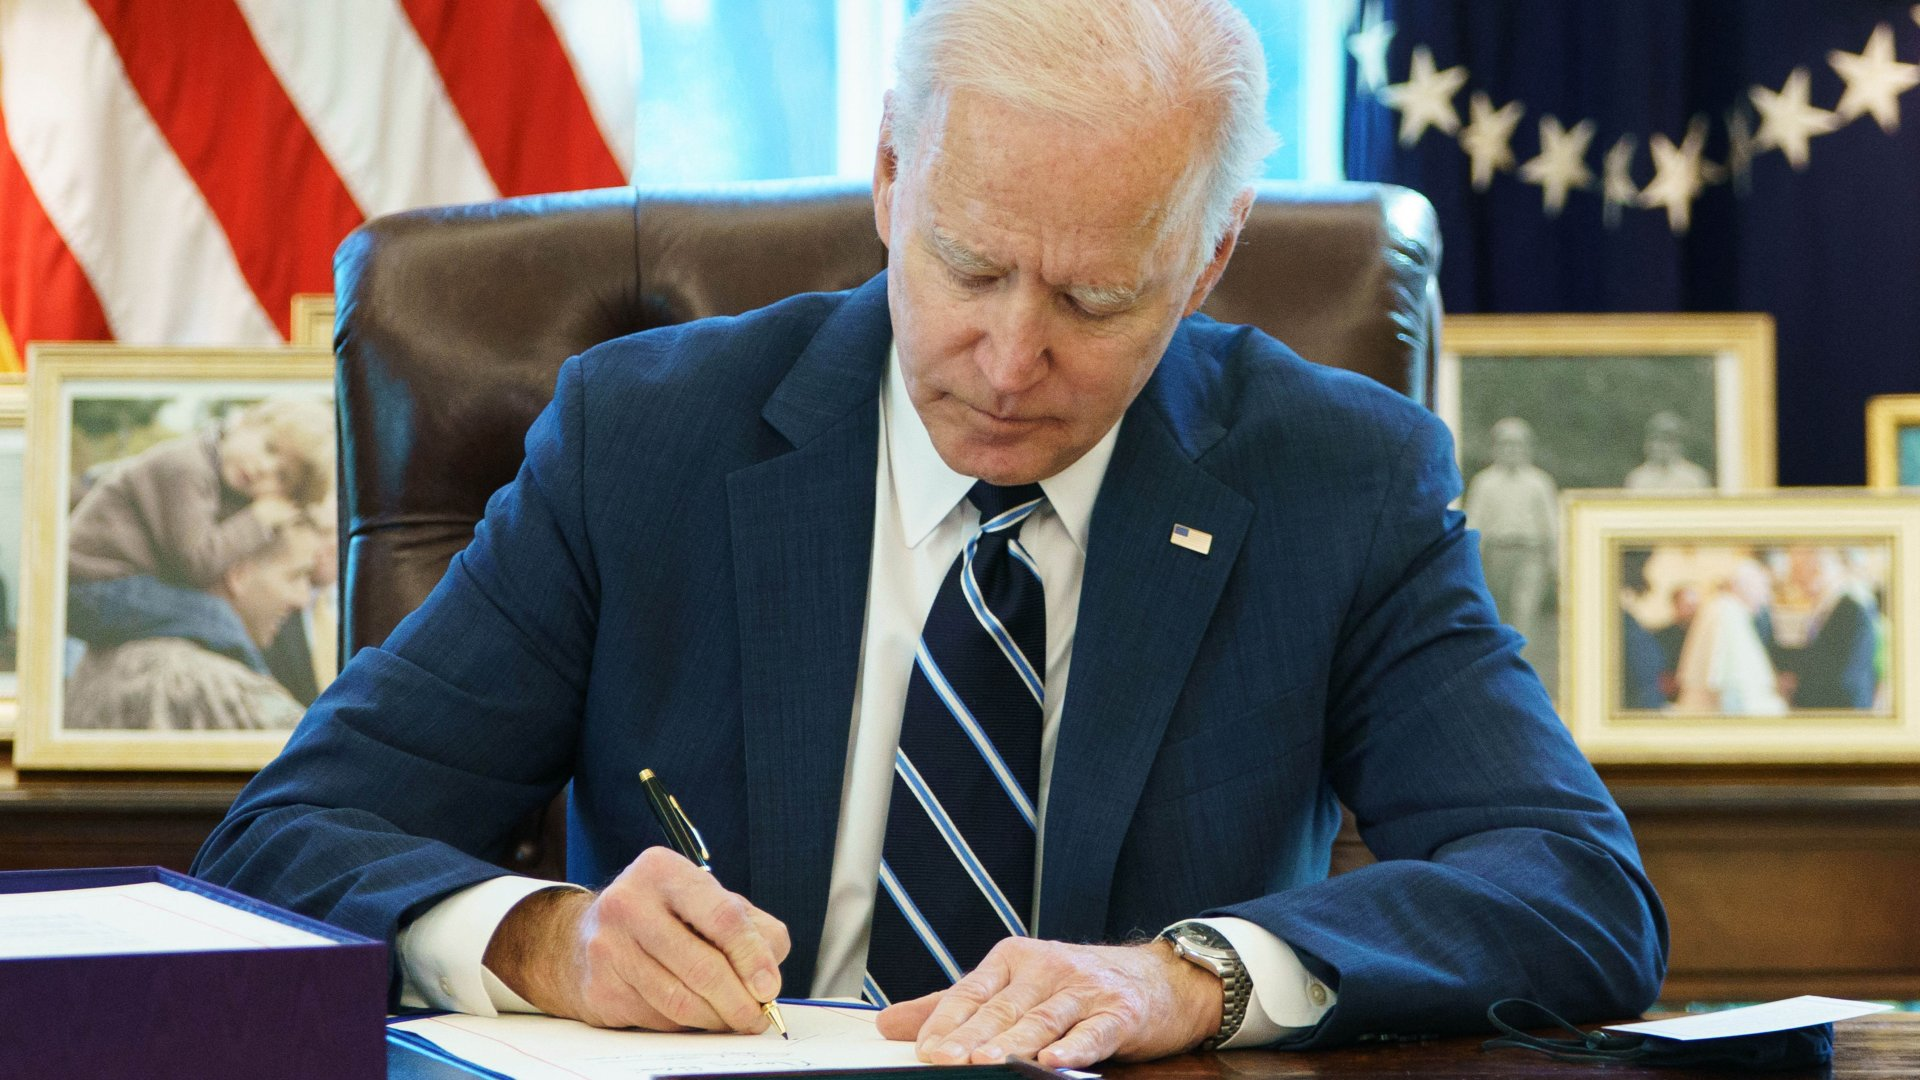 US President Joe Biden signs the American Rescue Plan on March 11, 2021, in the Oval Office of the White House in Washington, DC. - Biden signed the $1.9 trillion economic stimulus bill.